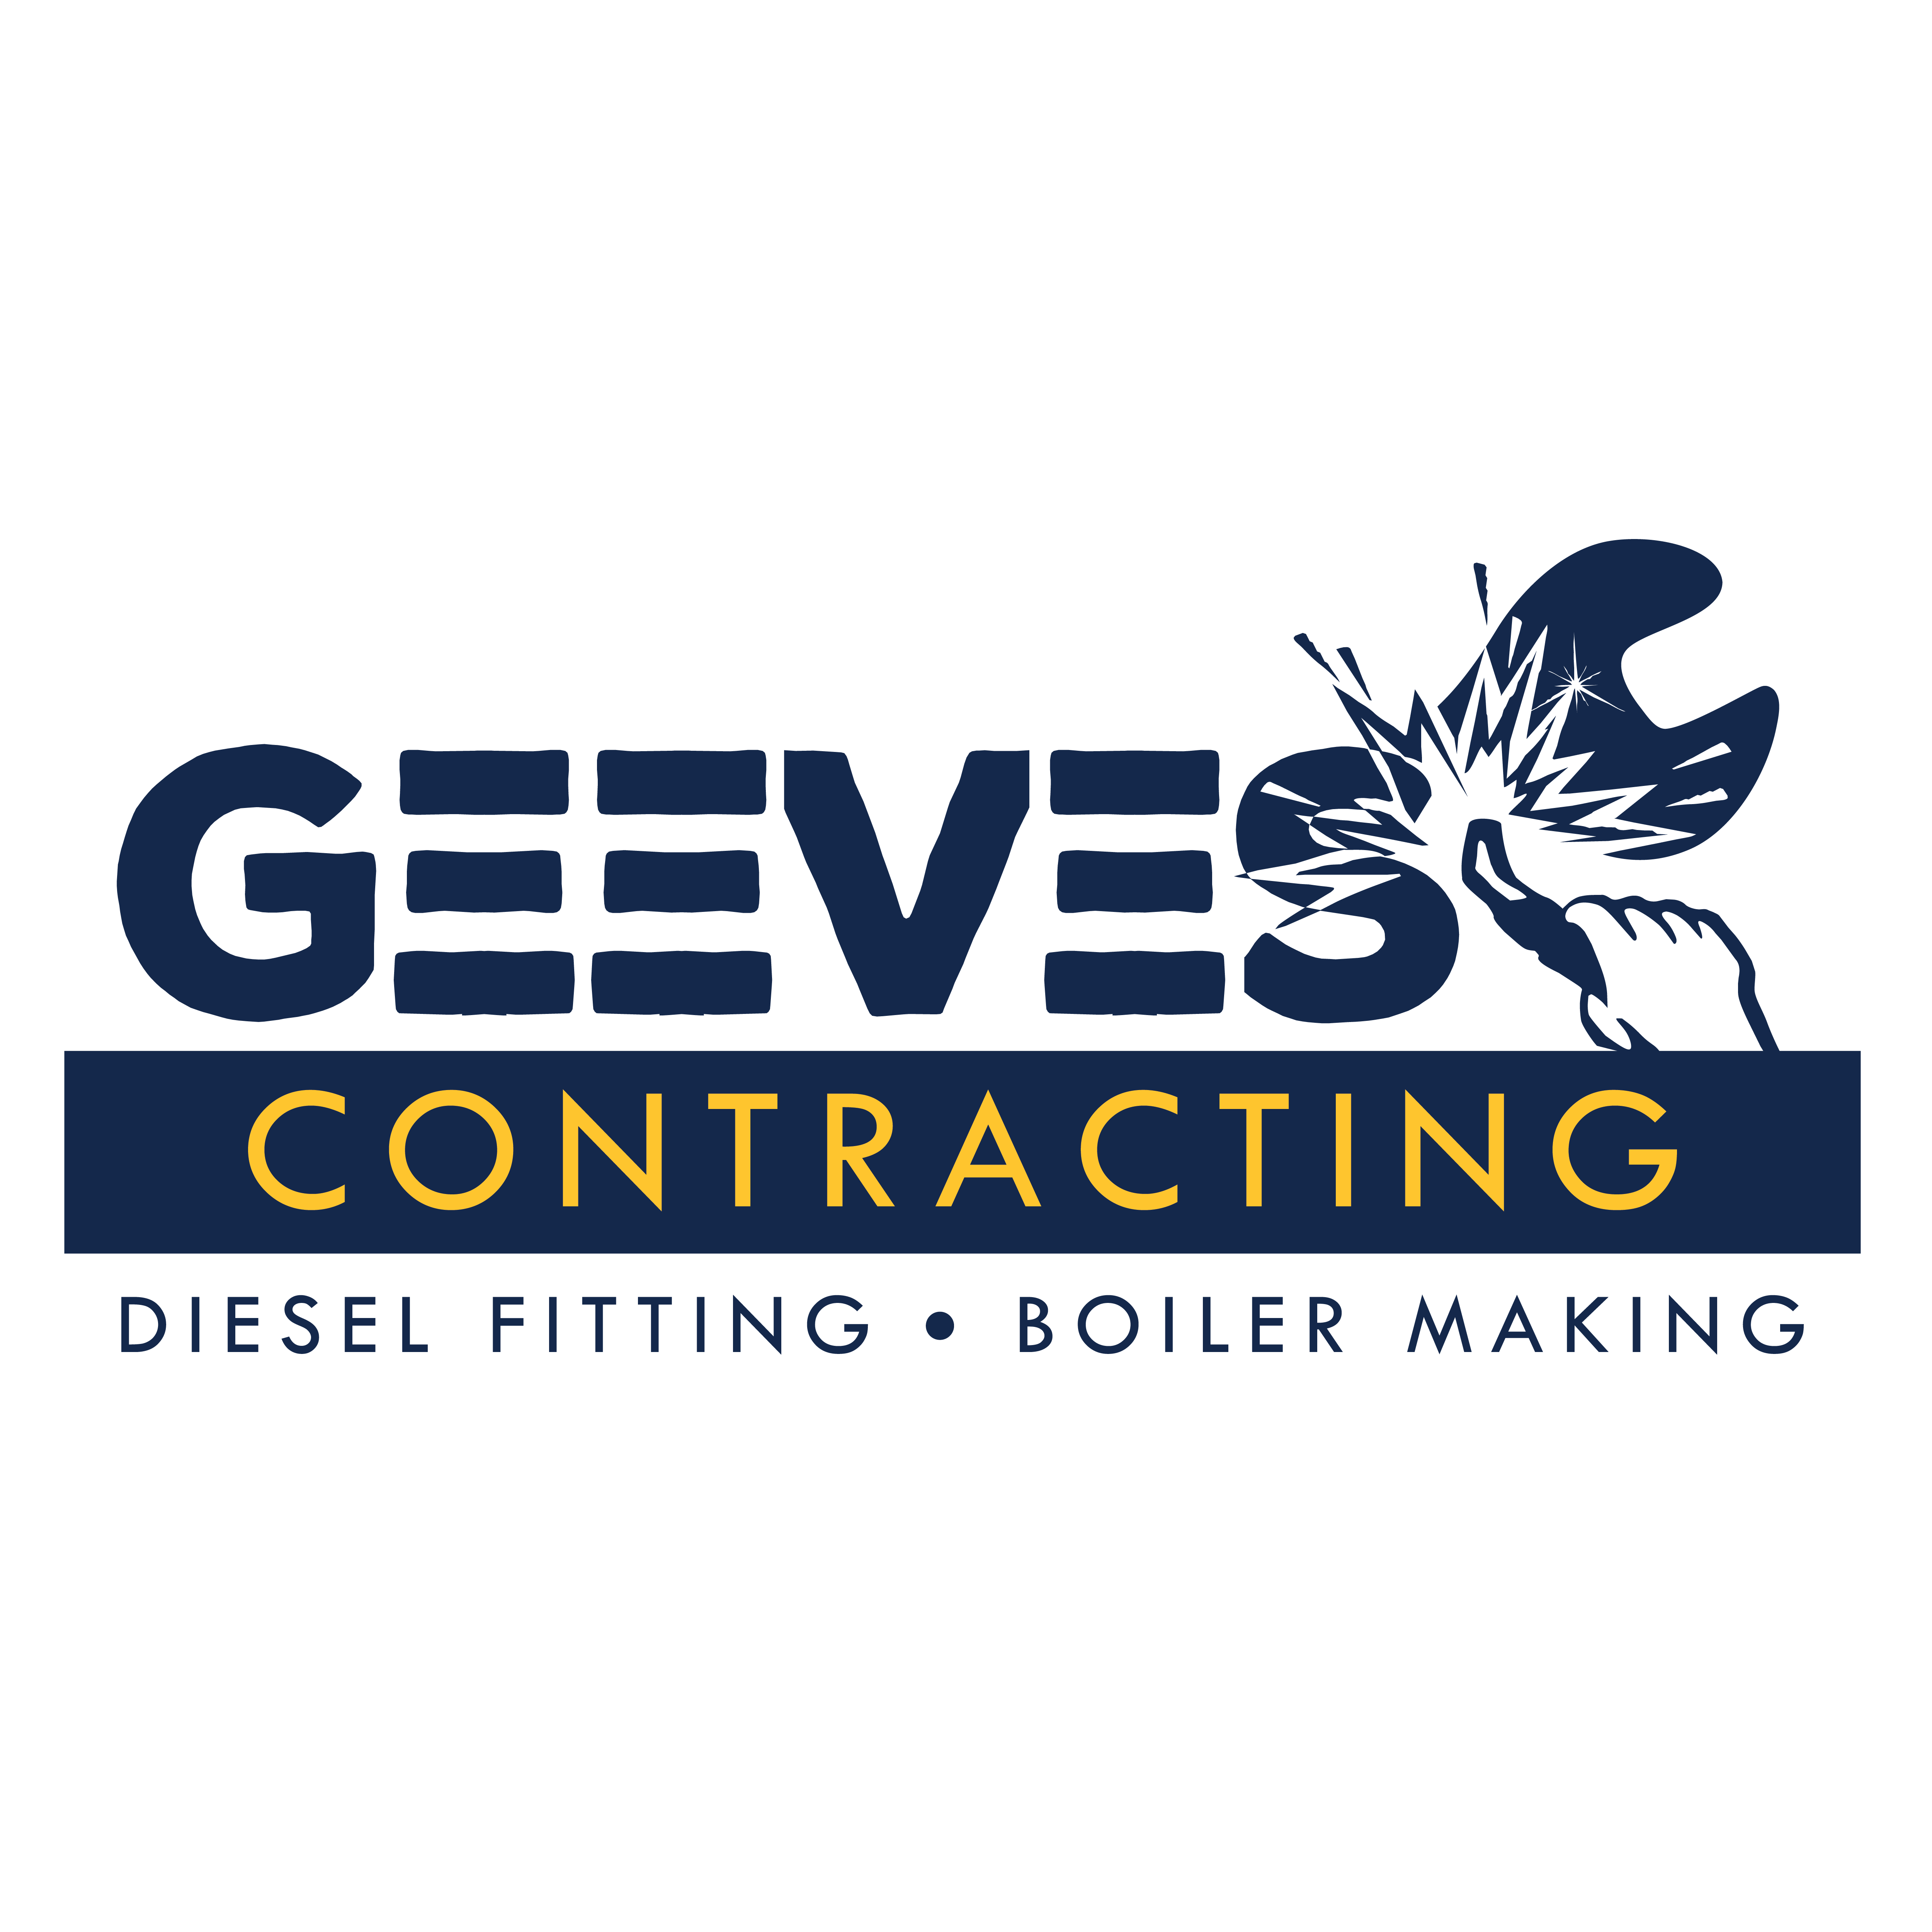 Geeves Contracting